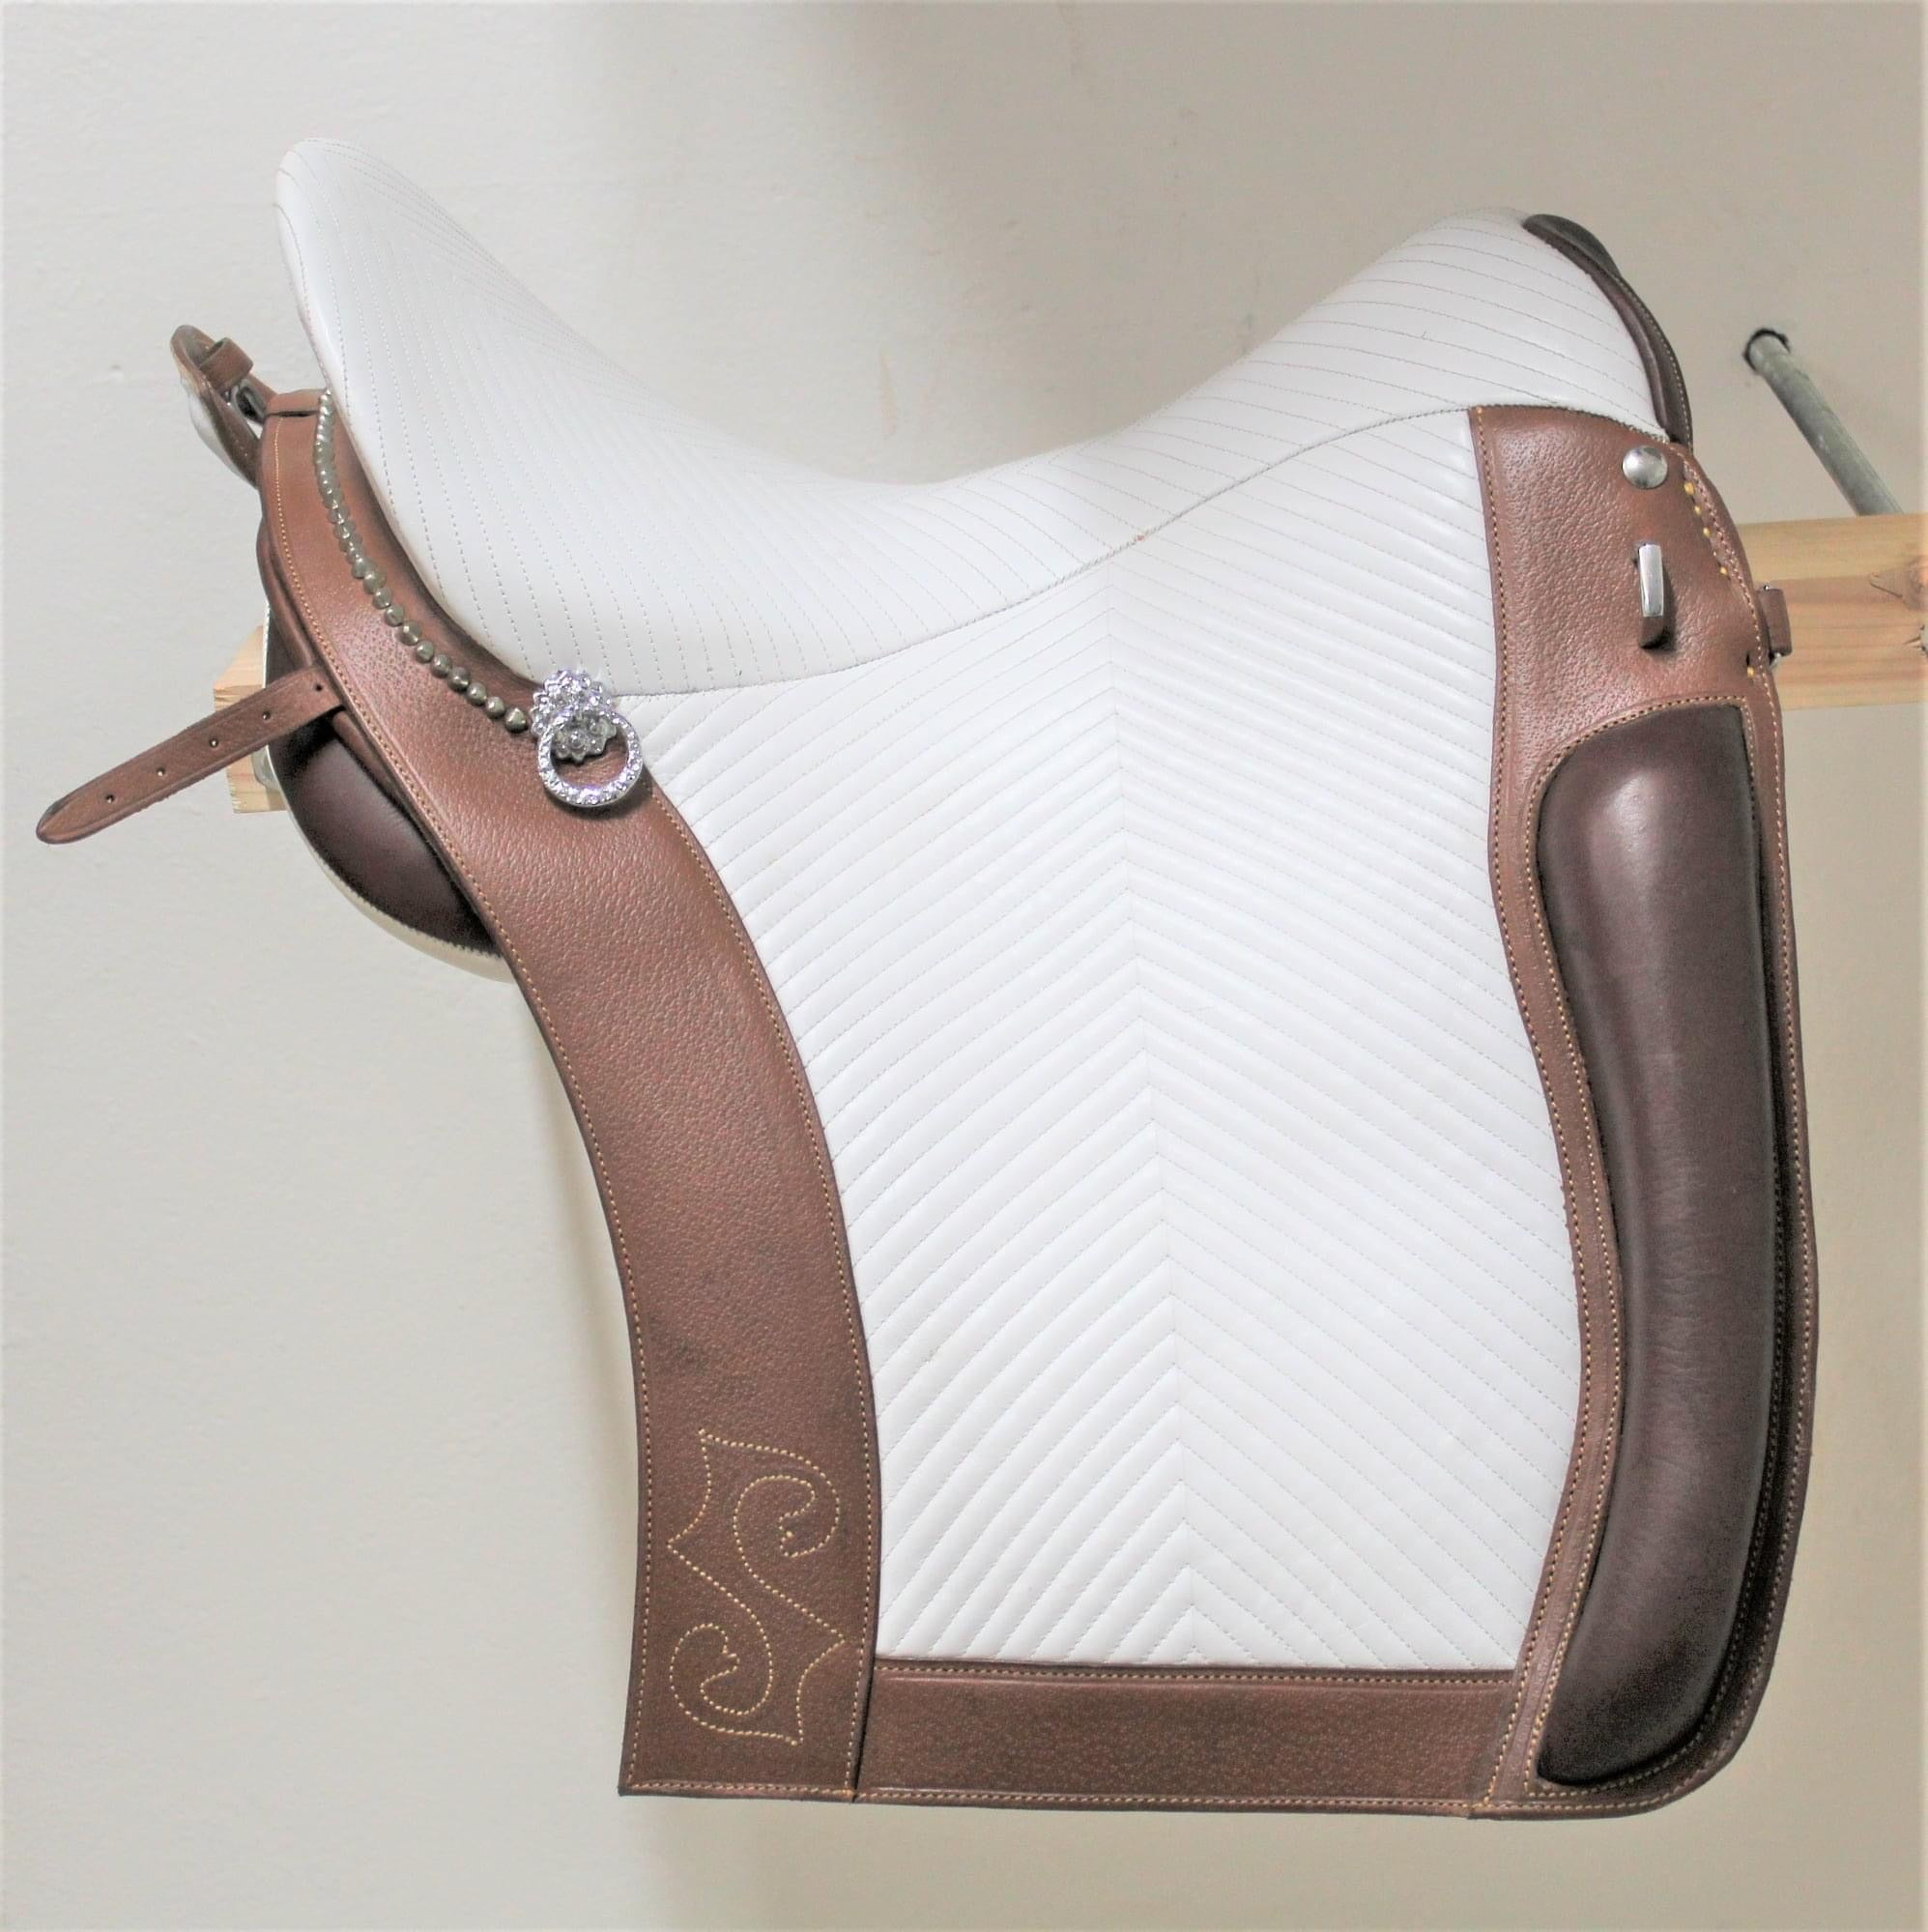 S0120 Handcrafted Portuguese Relvas saddle from VMCS